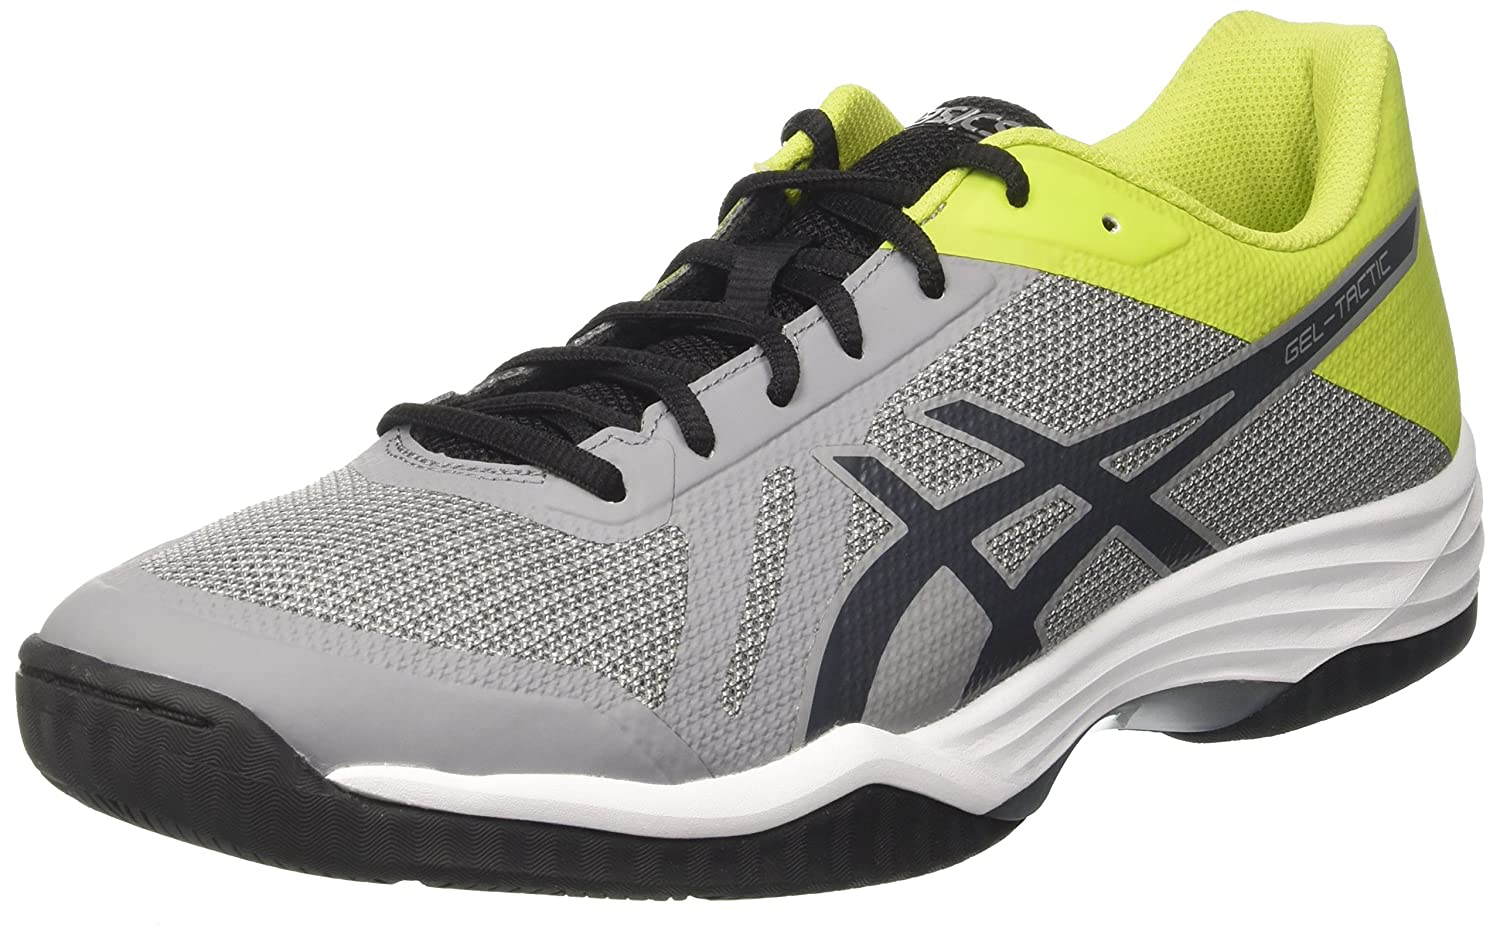 ASICS Men s Gel-Tactic Volleyball Shoes  Amazon.co.uk  Shoes   Bags 42ea9373ced9